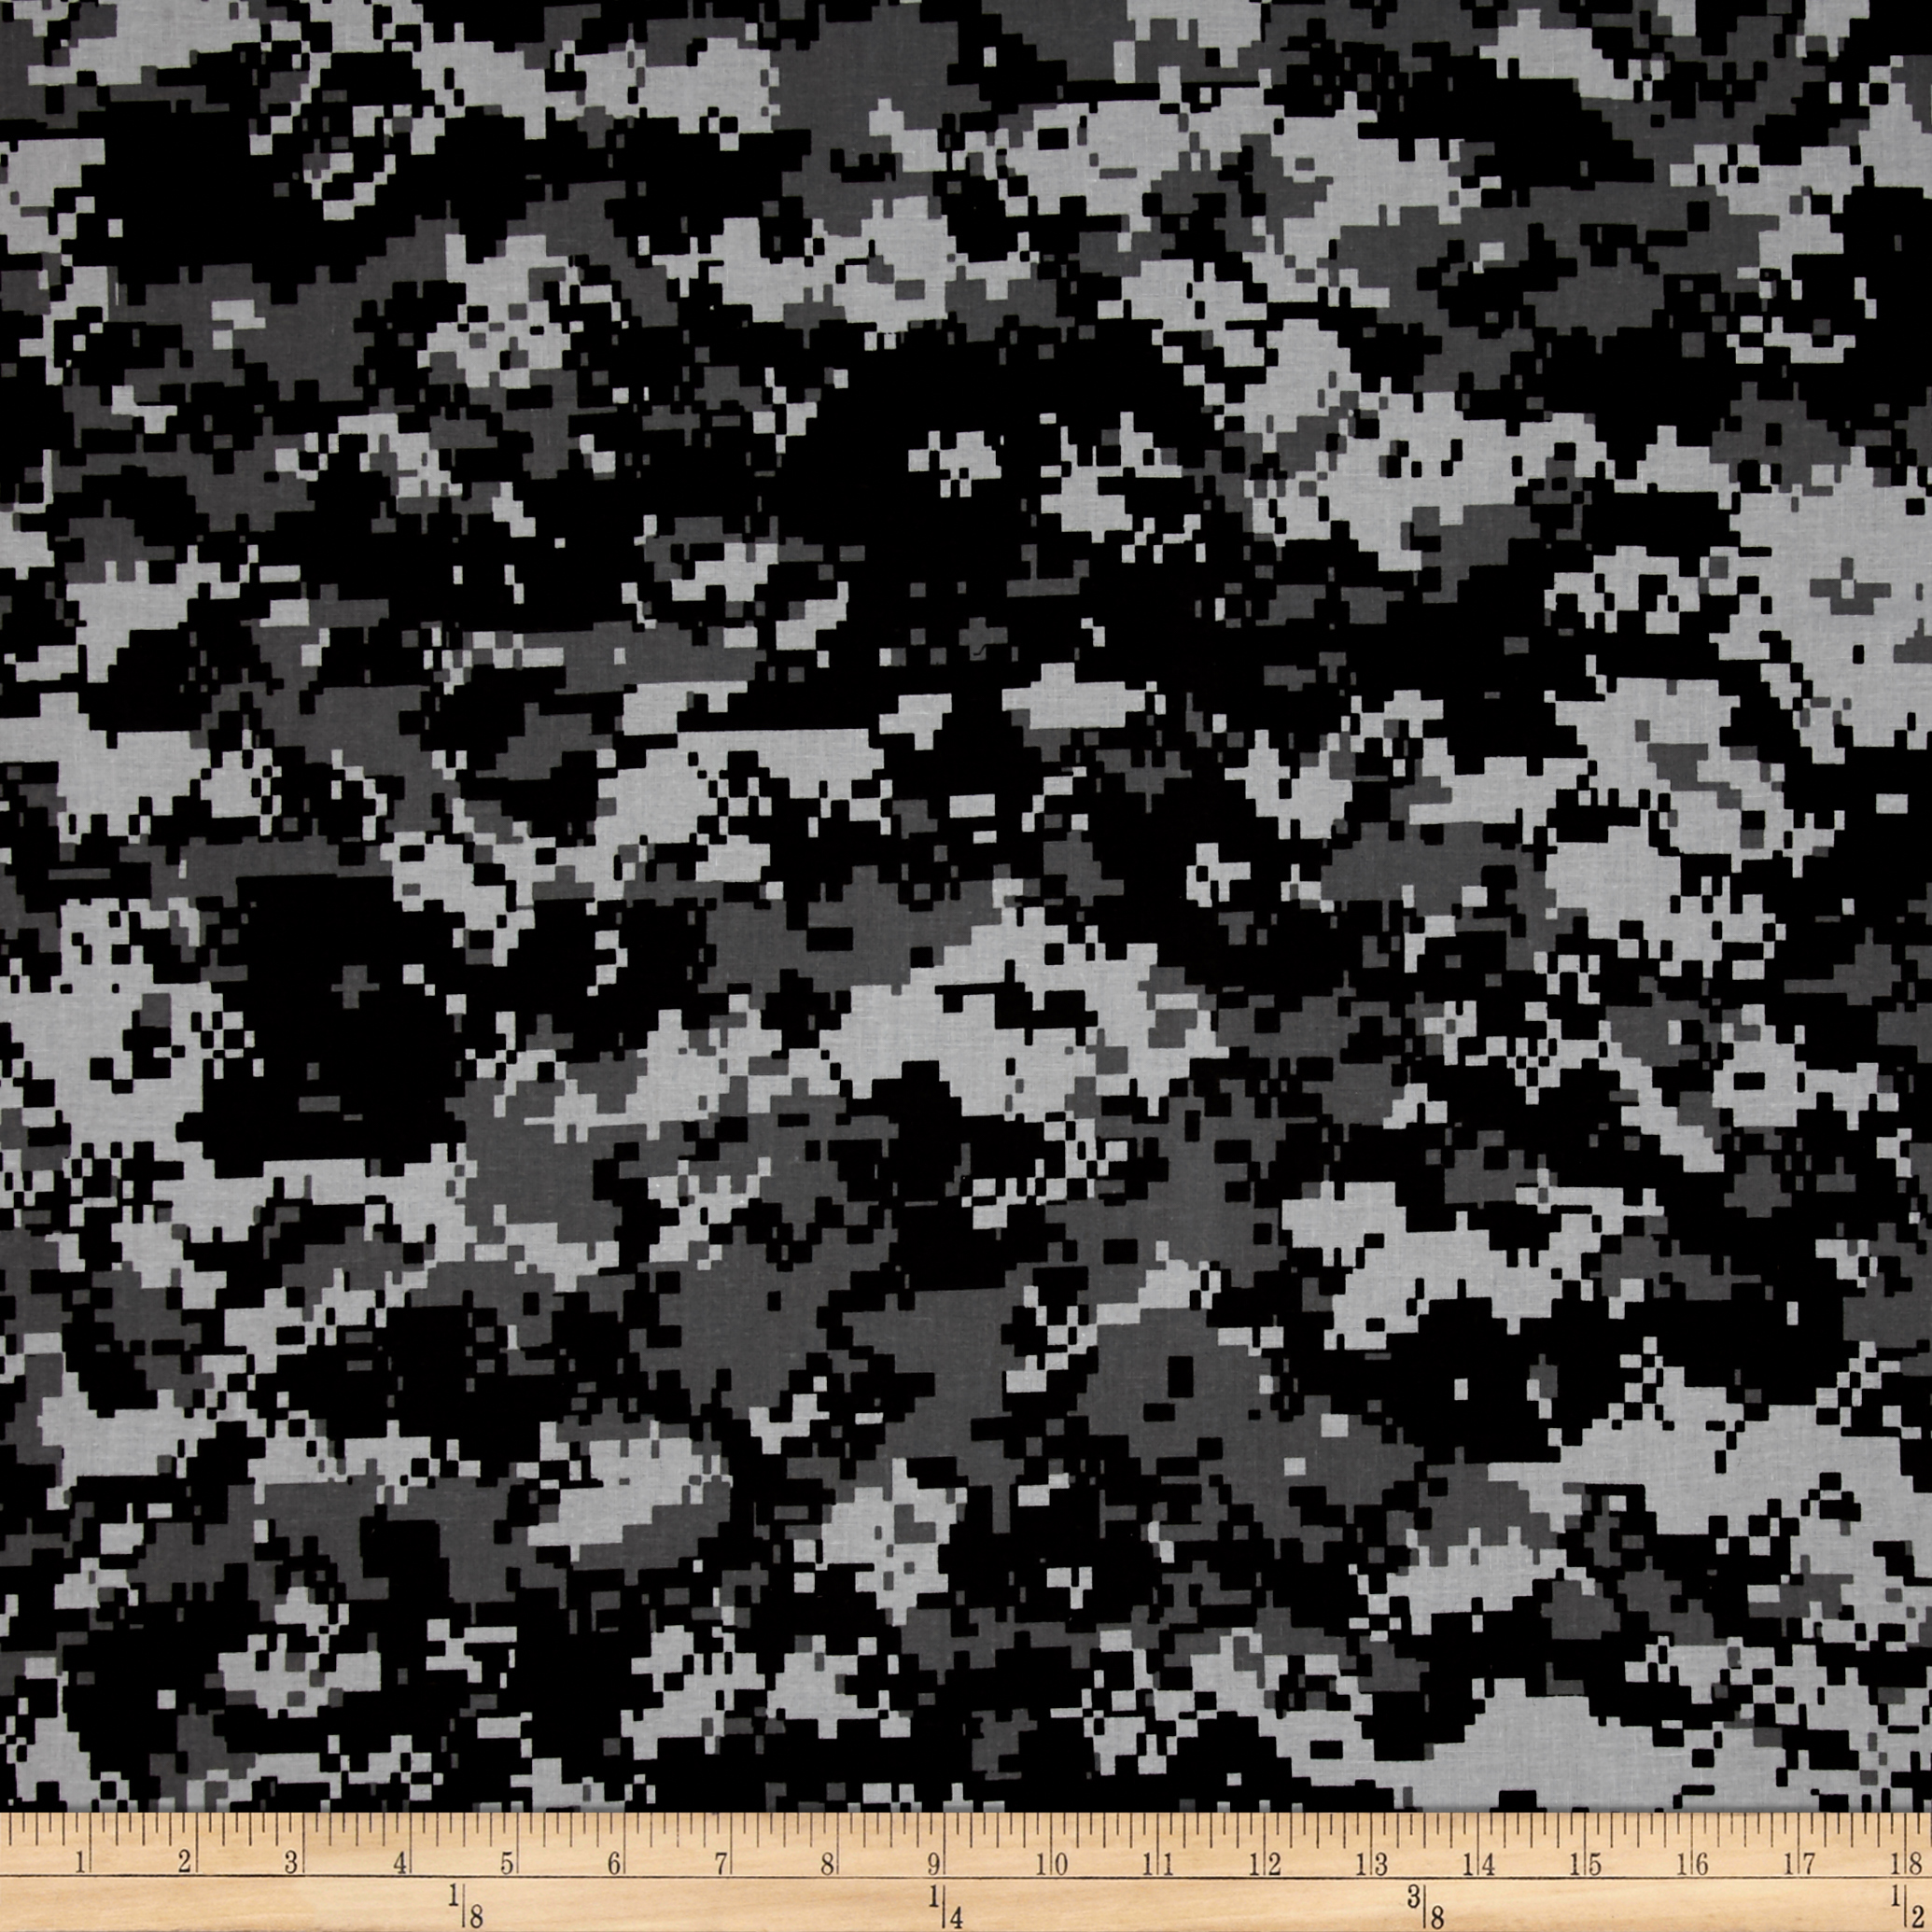 Urban Camouflage Black/Grey Fabric by Santee in USA